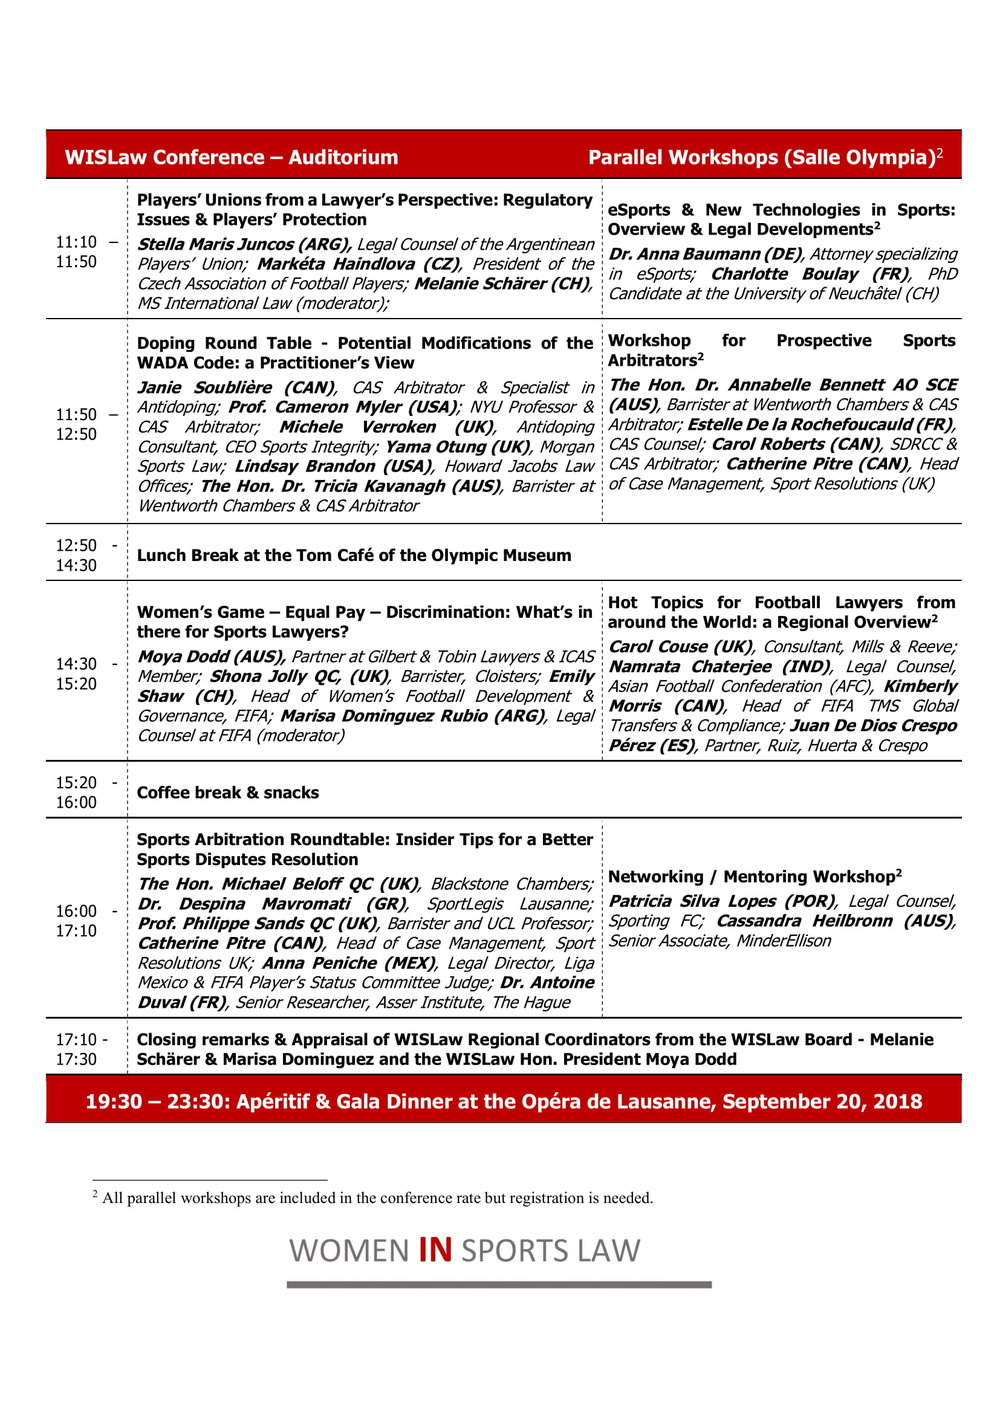 2nd WISLaw Conference 2 pages FINAL September 2018-2.jpg